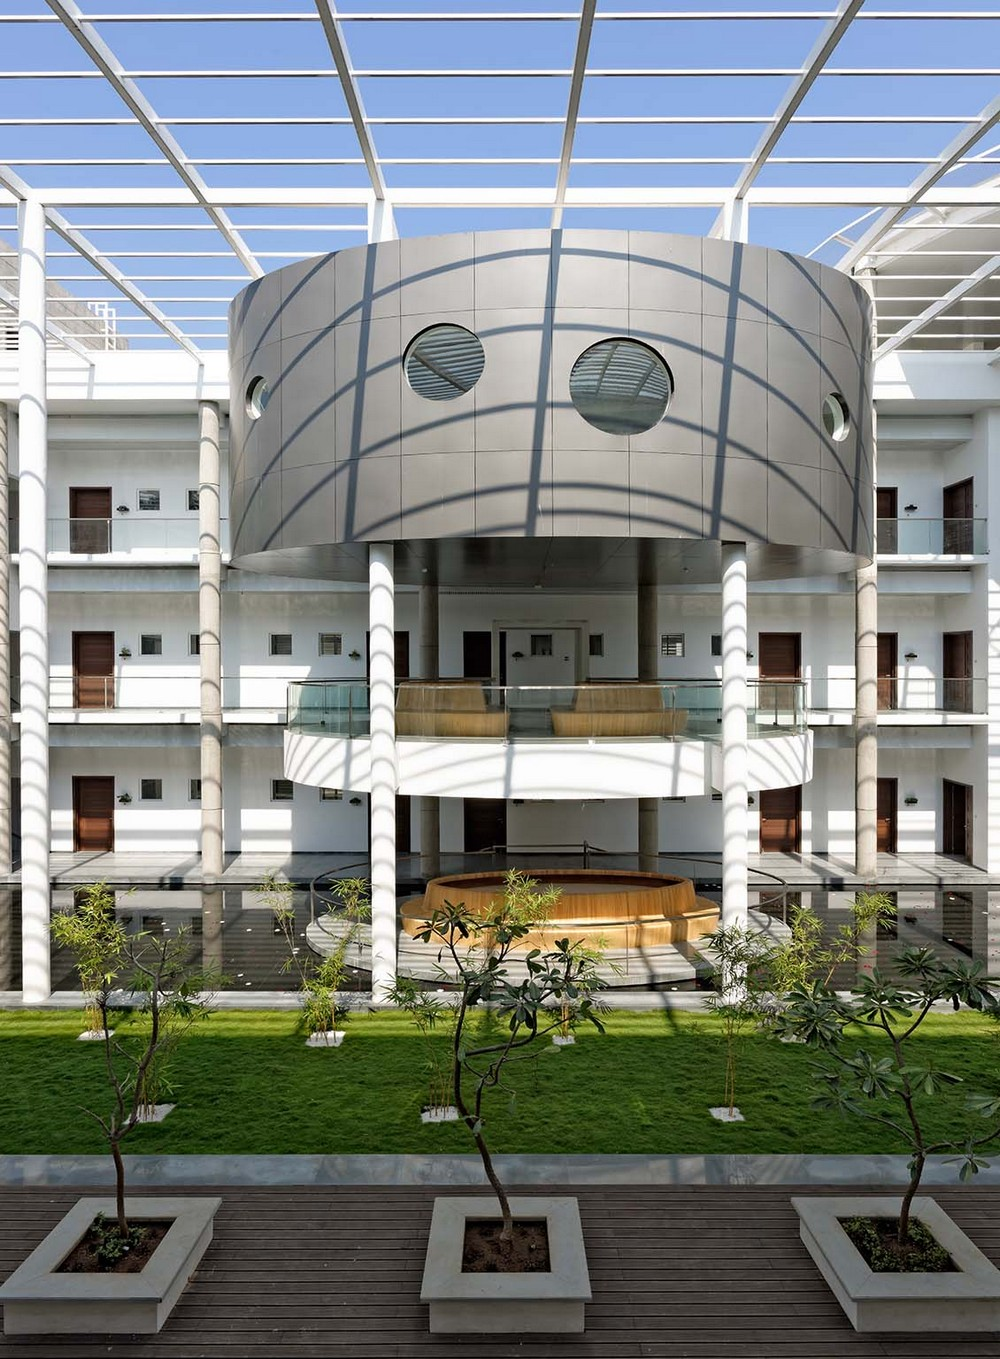 Vvip circuit house pune building 11 e architect for Architecture design for home in pune